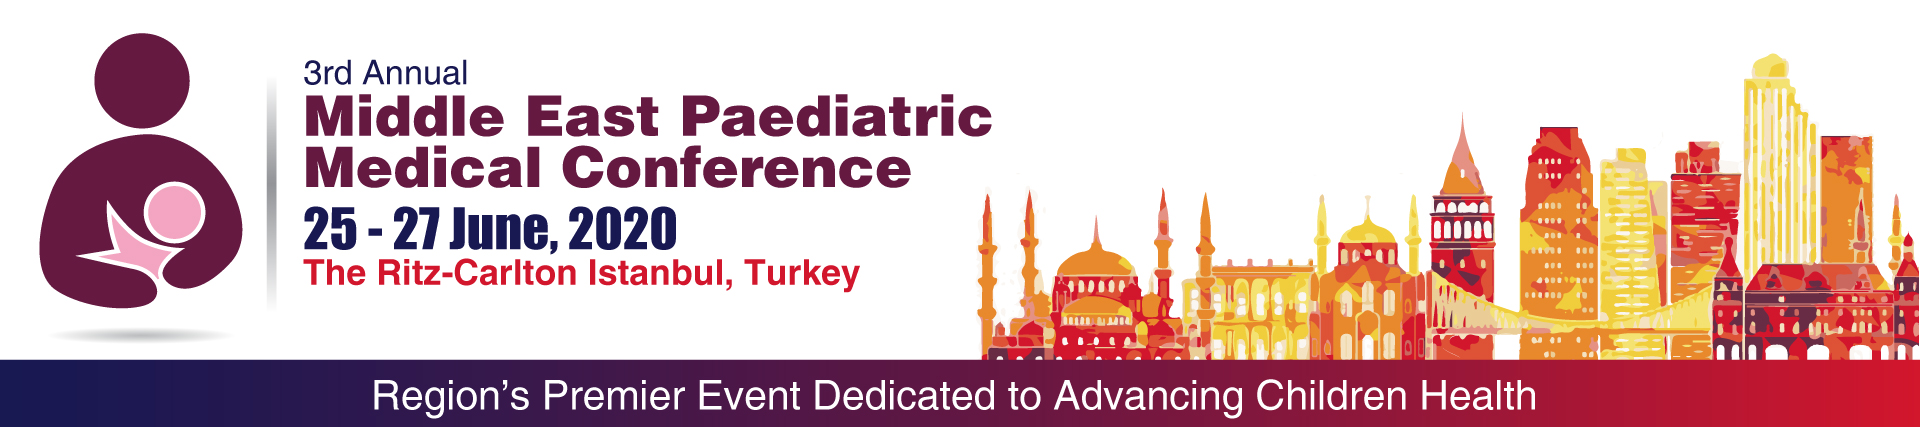 Middle East Paediatric Medical Conference 2020